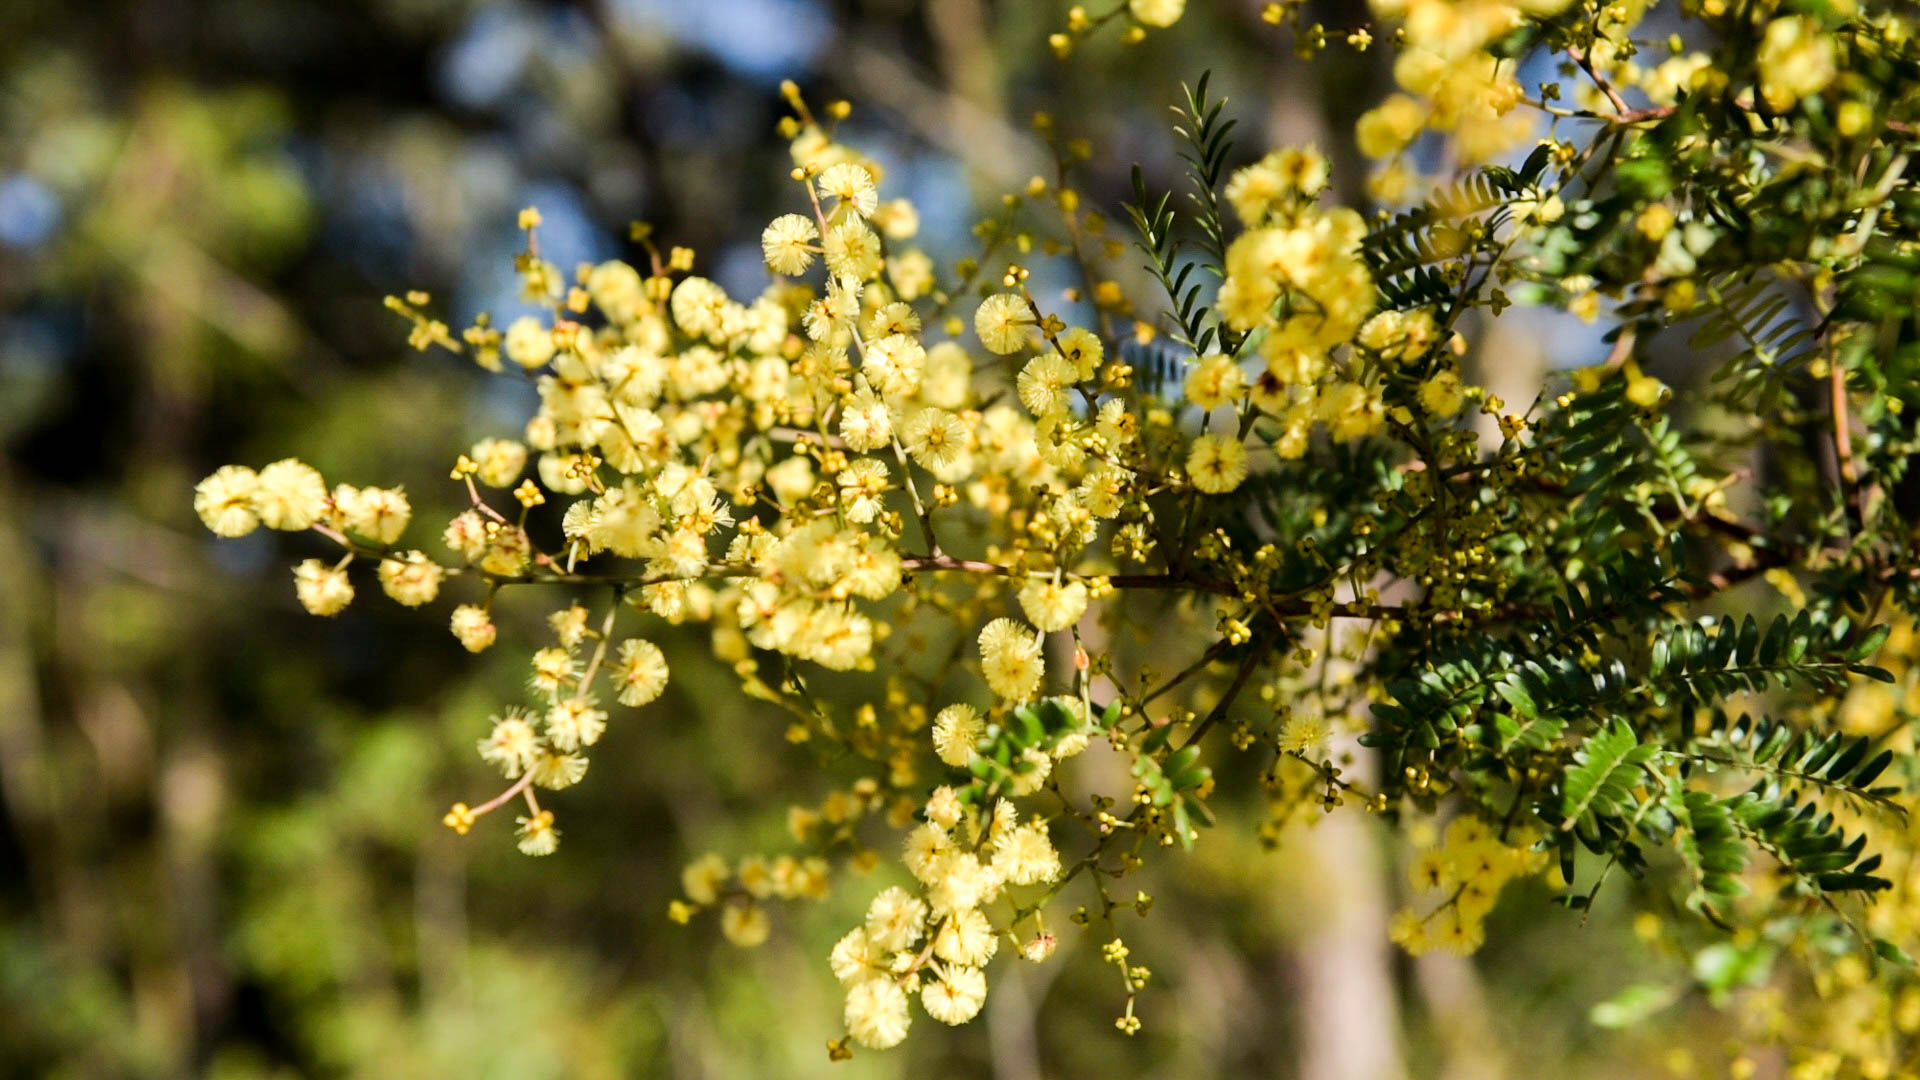 Lovely wattle Photo: V Hong